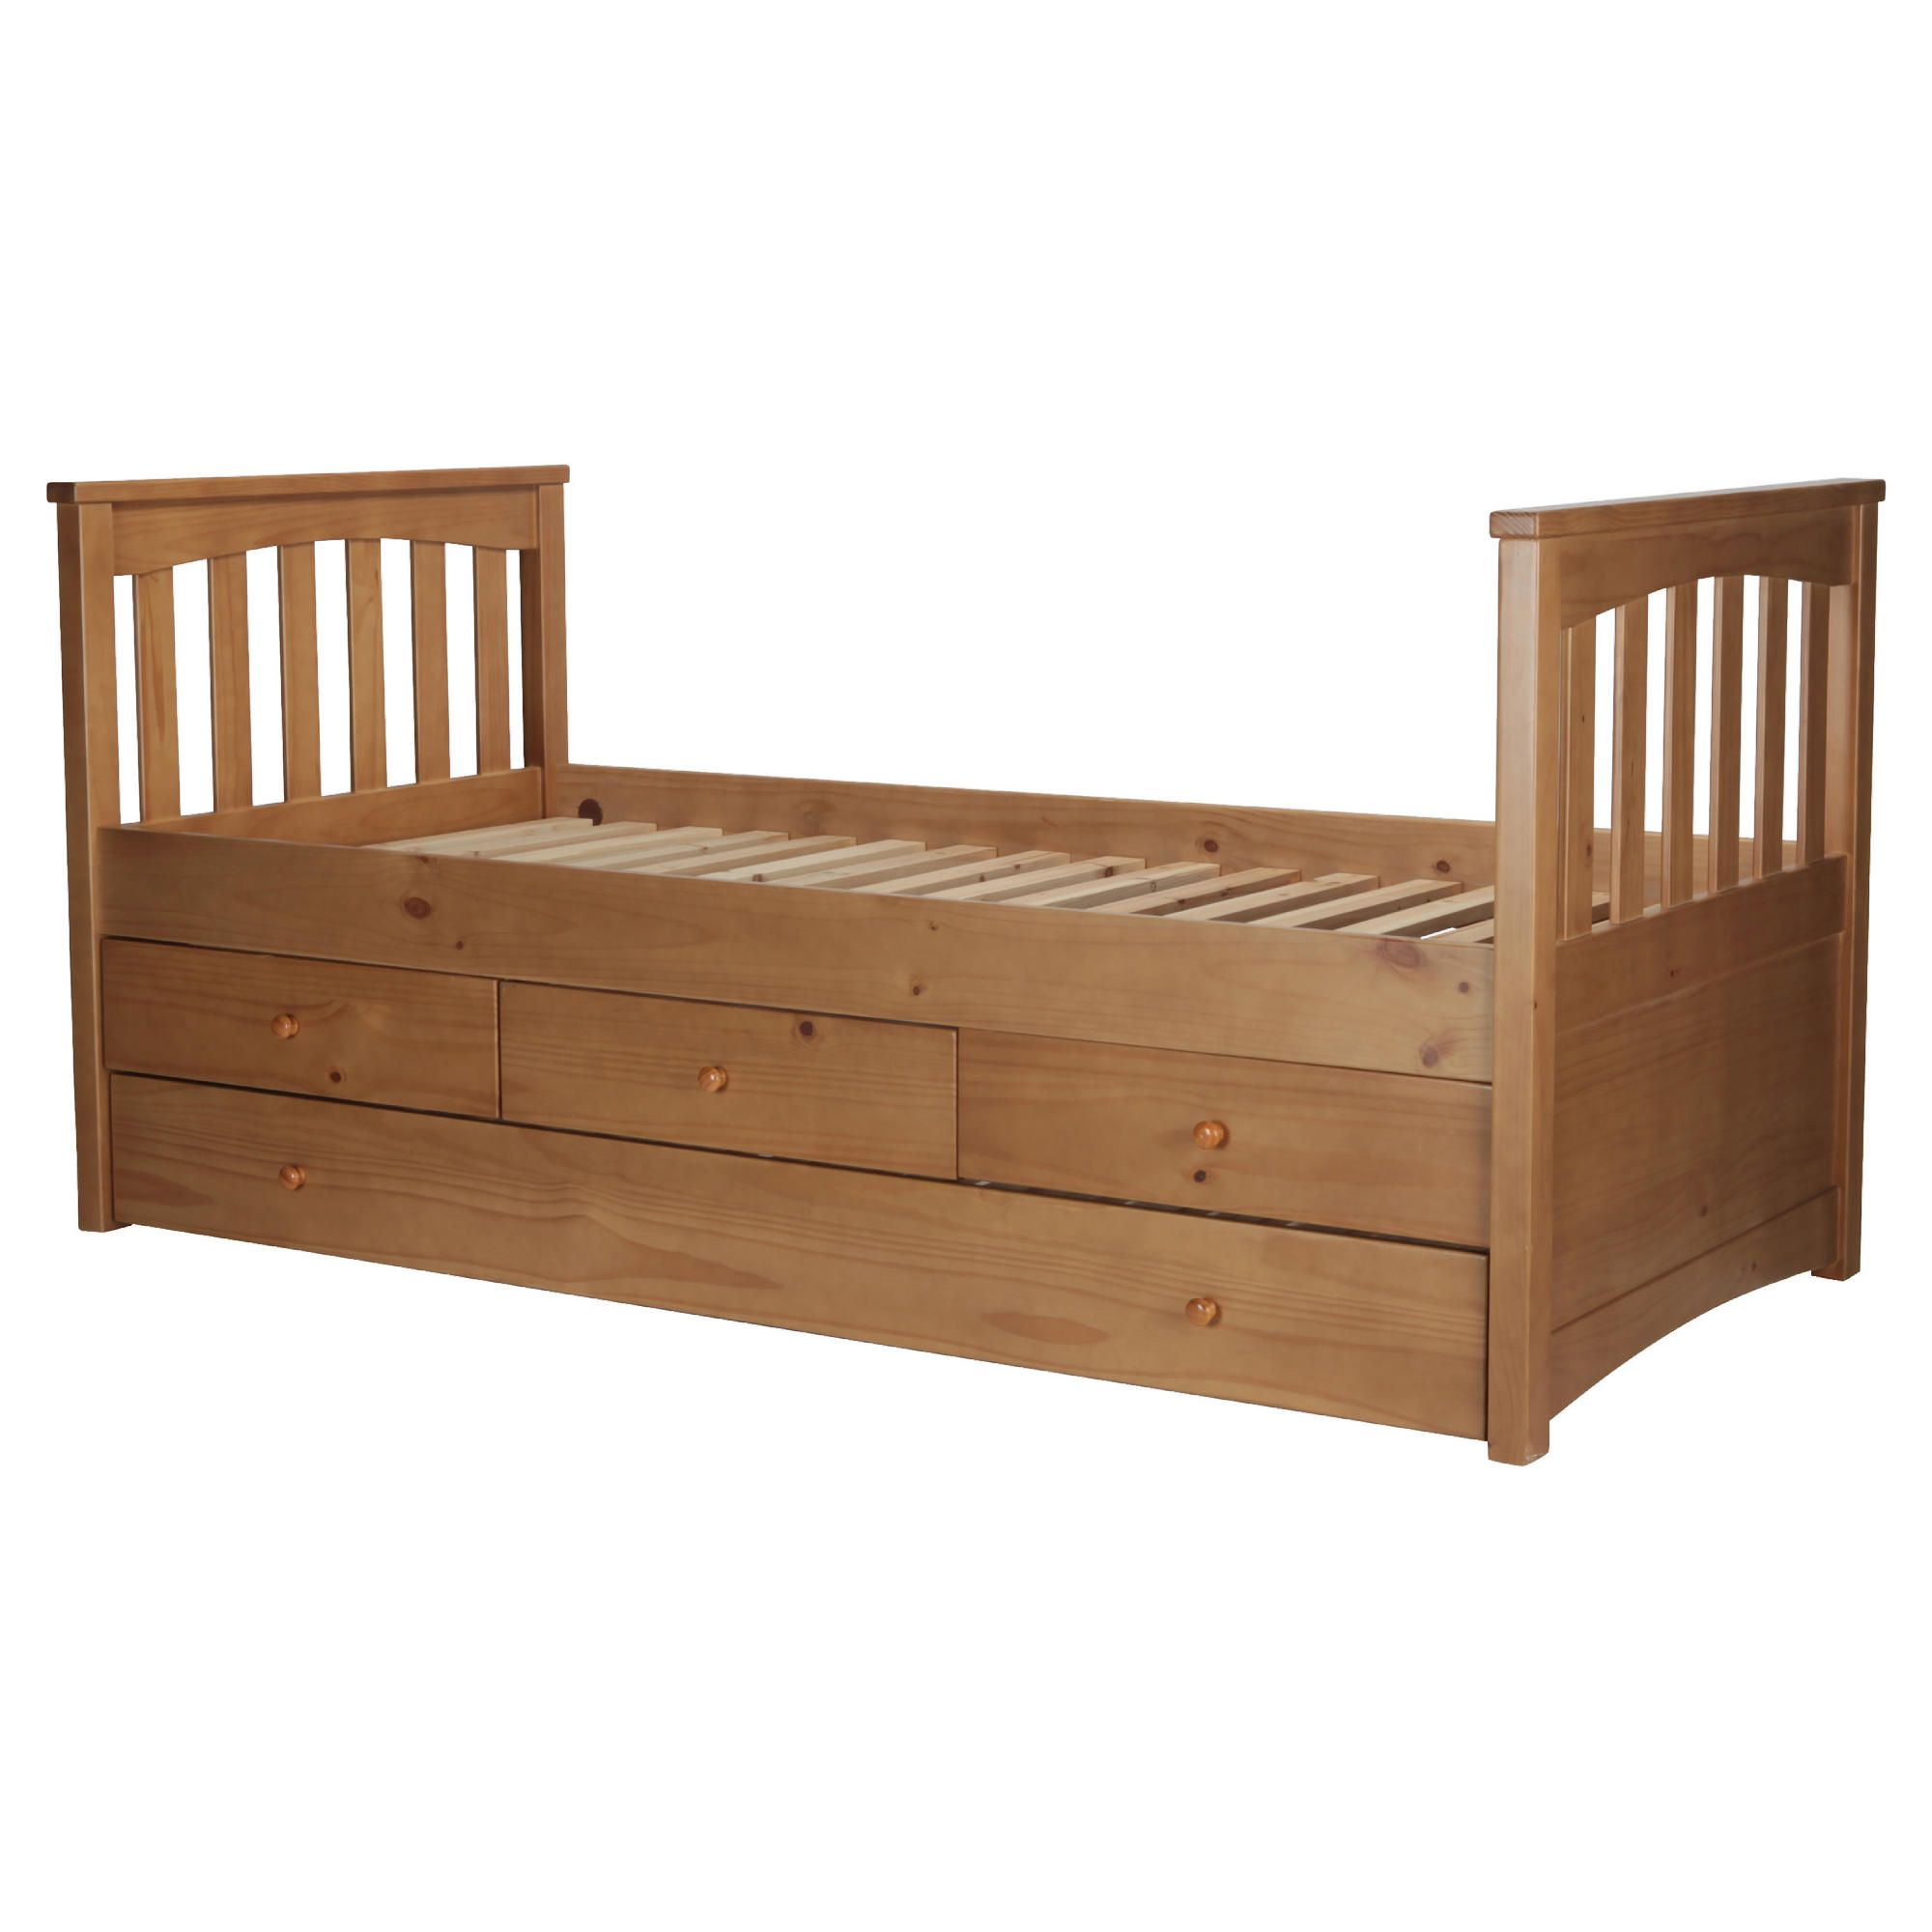 Kids Captains Bed Frame, Natural Pine with Oak Stain at Tesco Direct